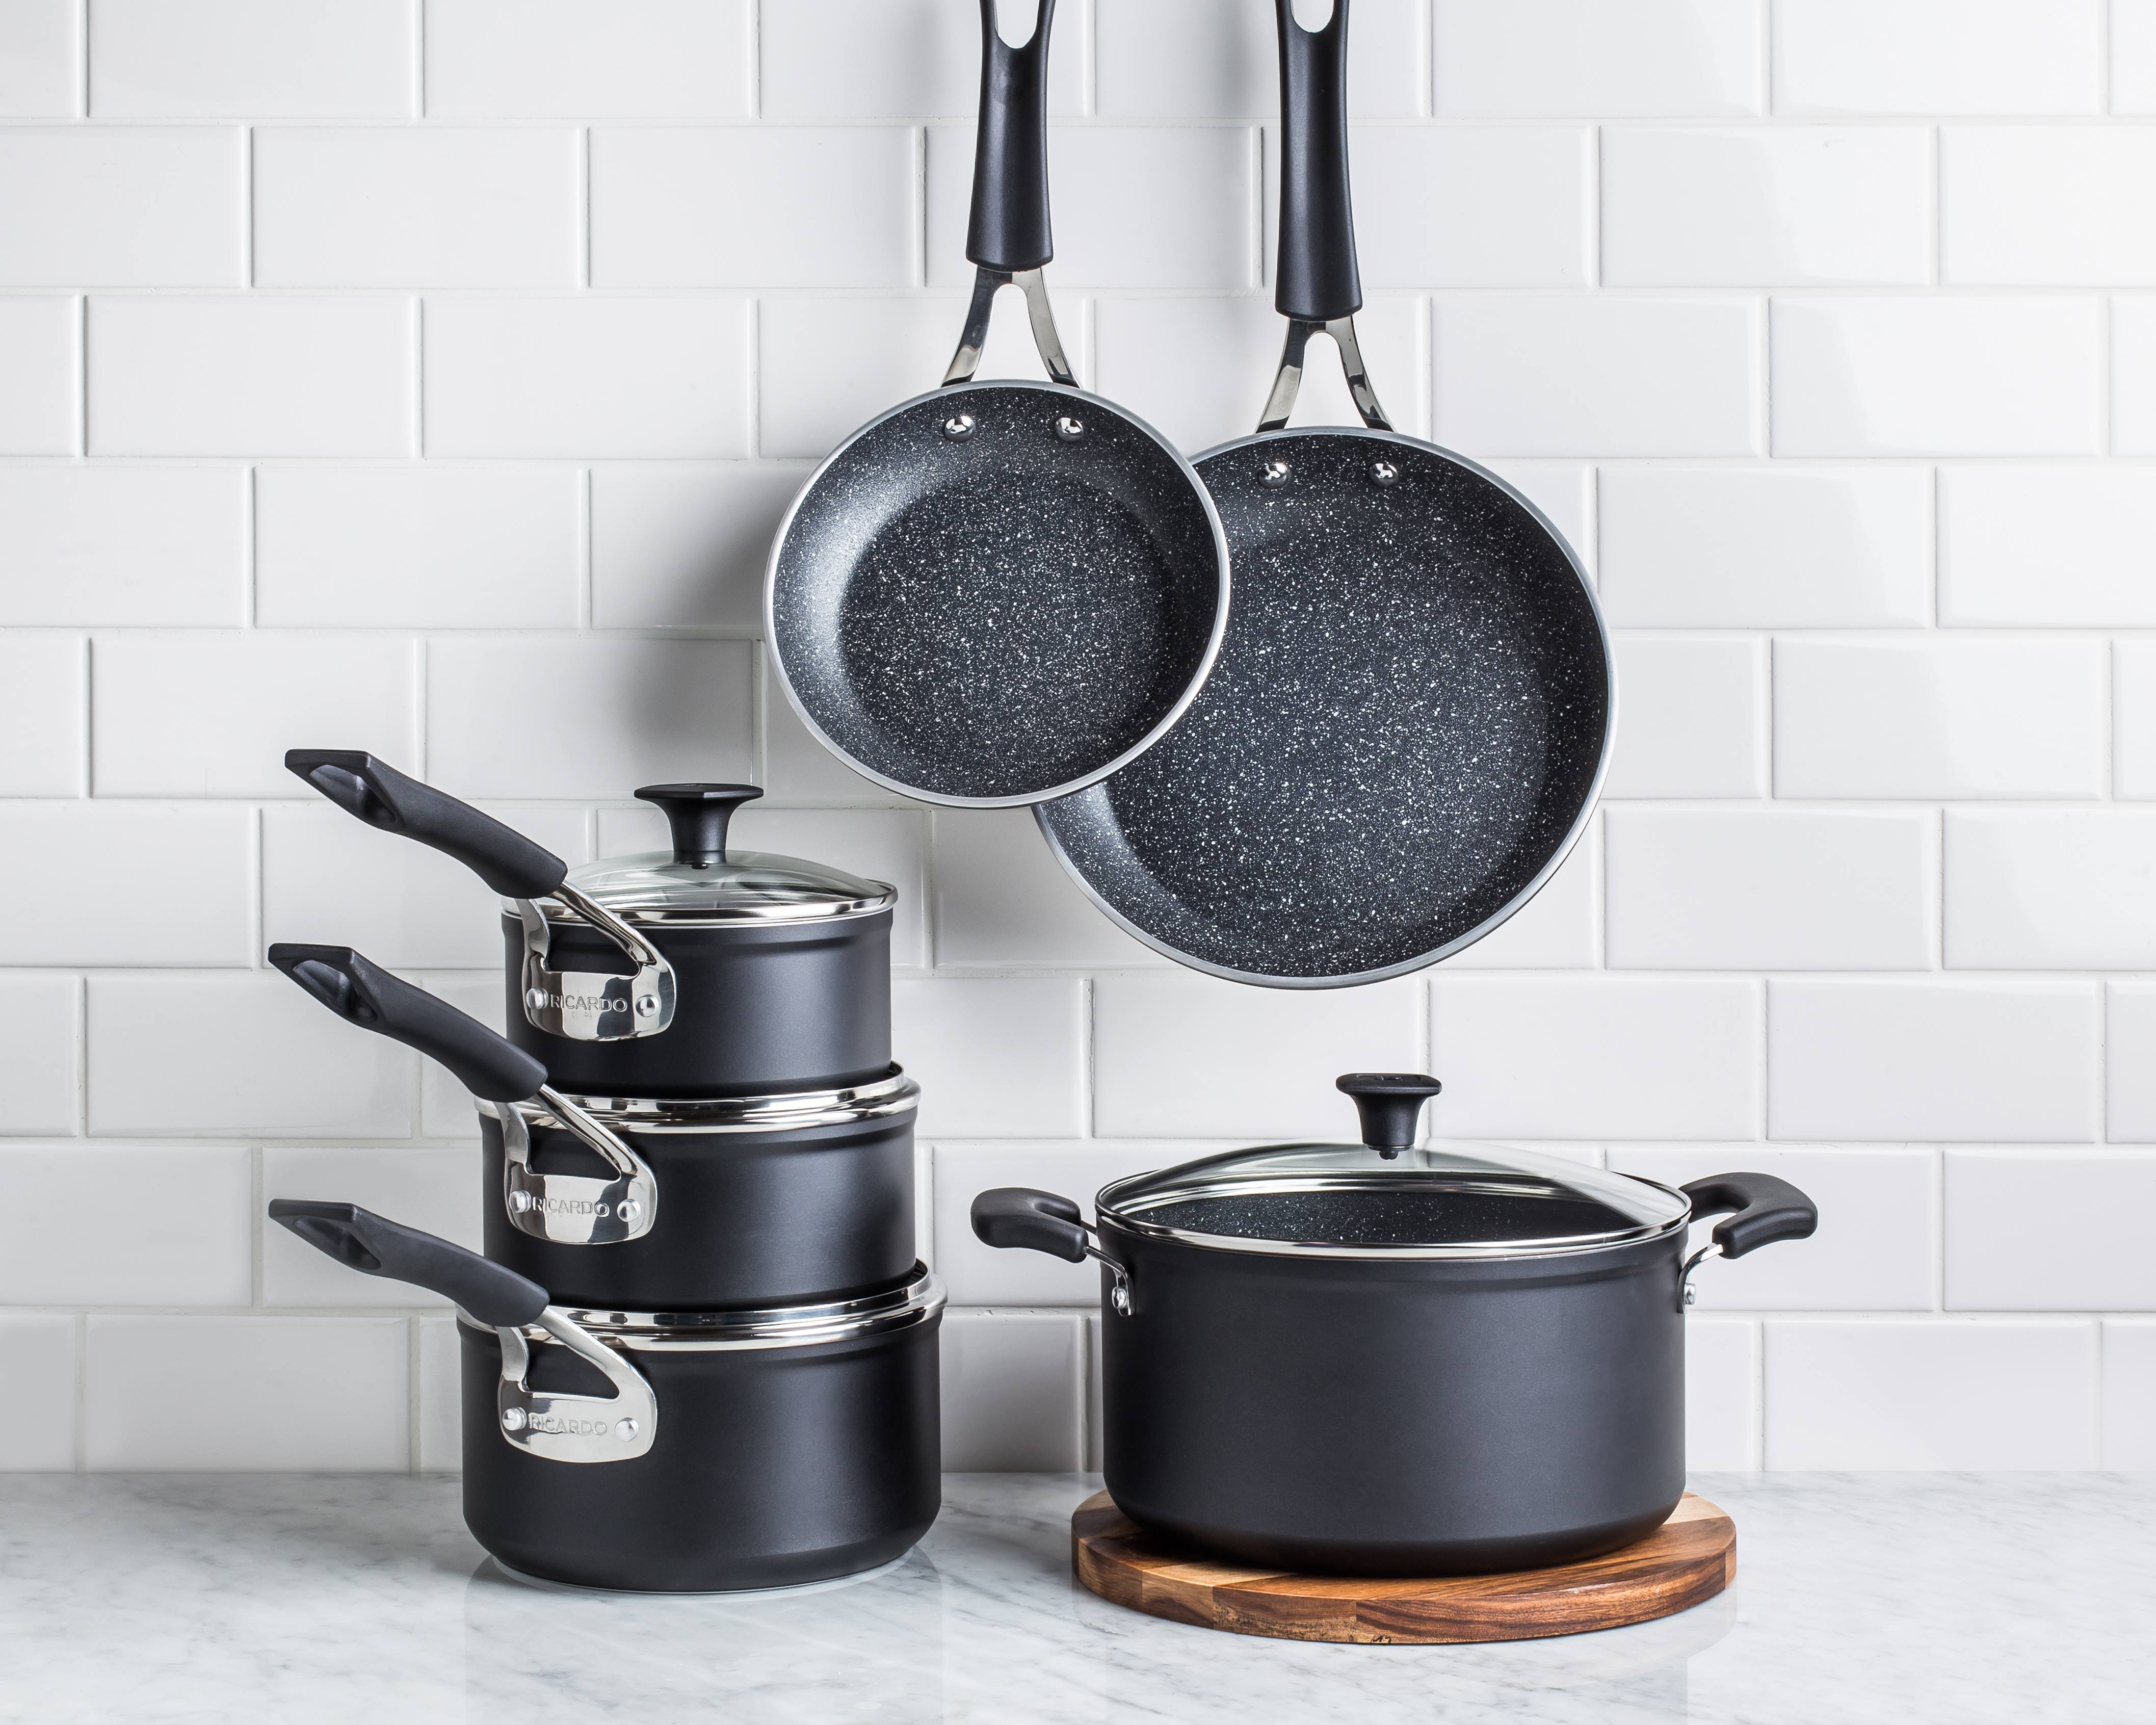 aluminum cookware set with saucepans, dutch oven, and frypans wedding gifts